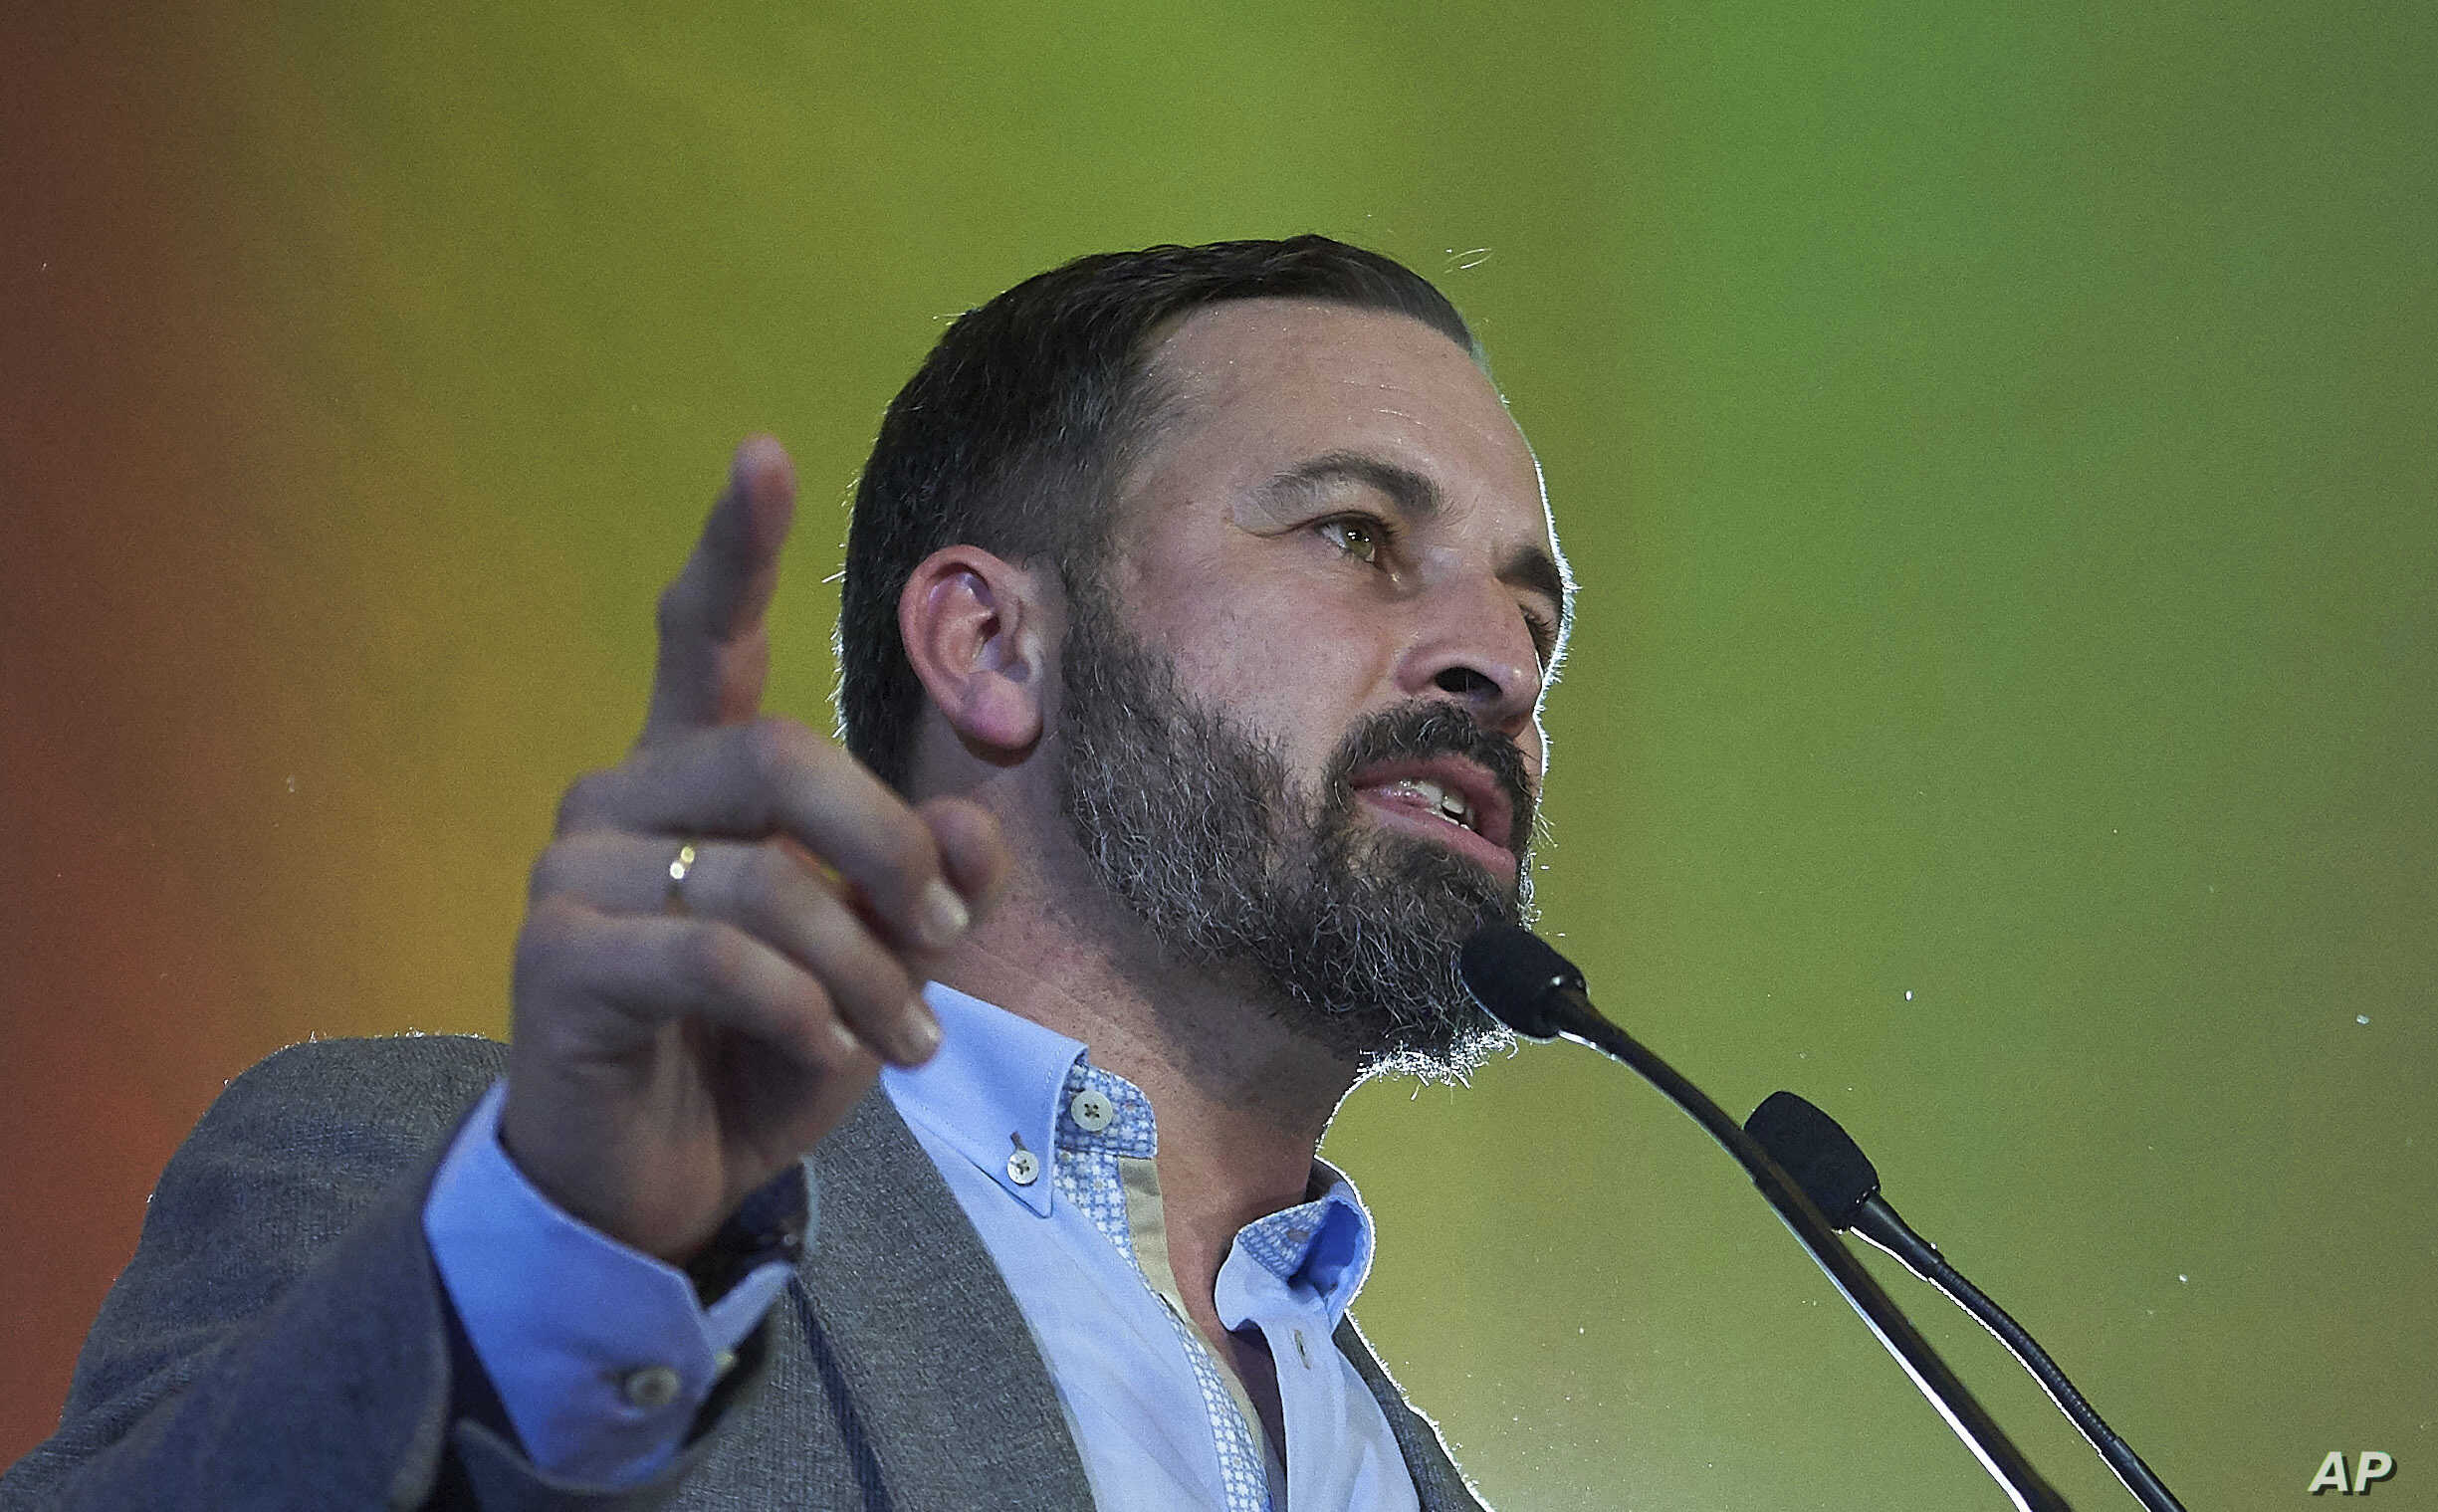 Spain's far-right Vox party President Santiago Abascal takes part in a rally during regional elections in Andalusia, in Seville, Spain.